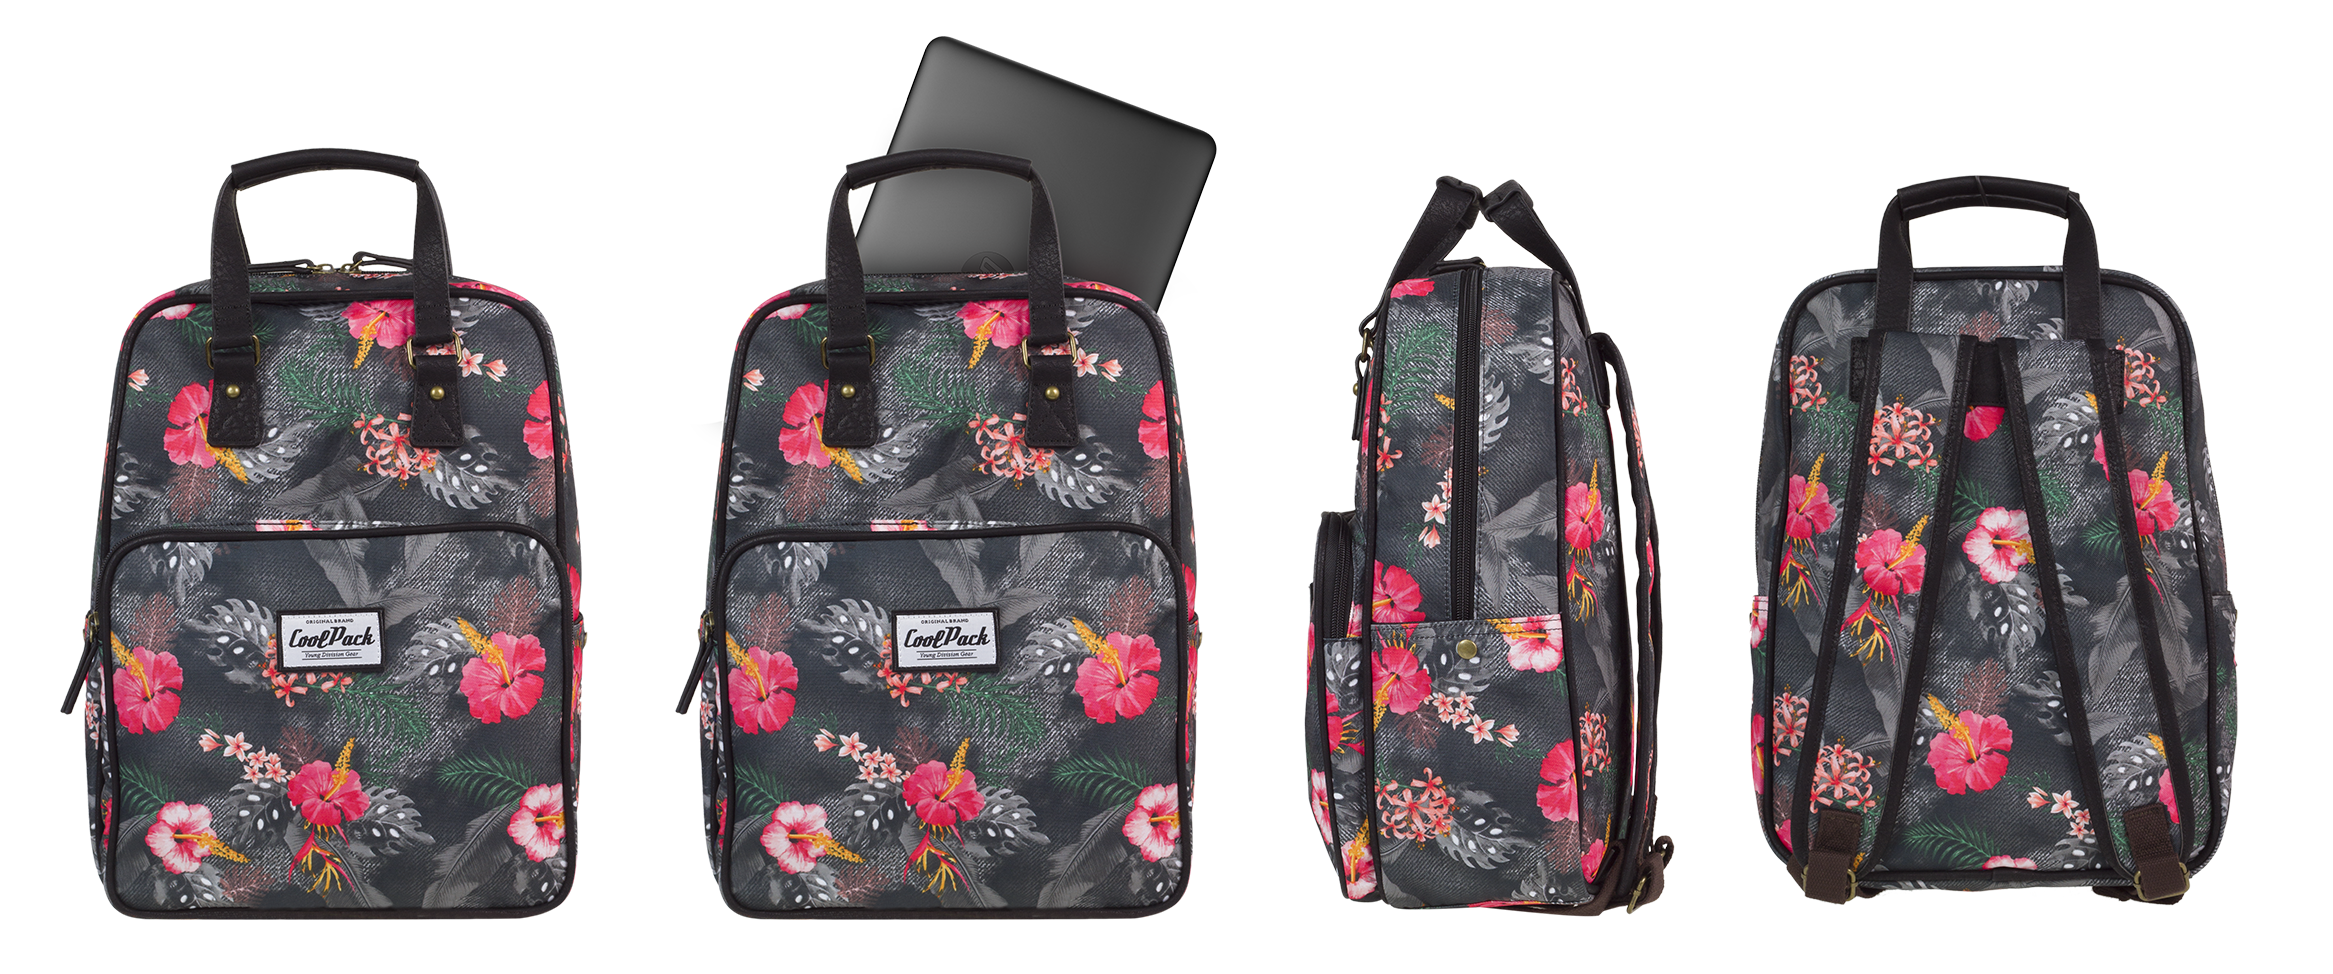 Coolpack - cubic - youth backpack - a090 - vintage